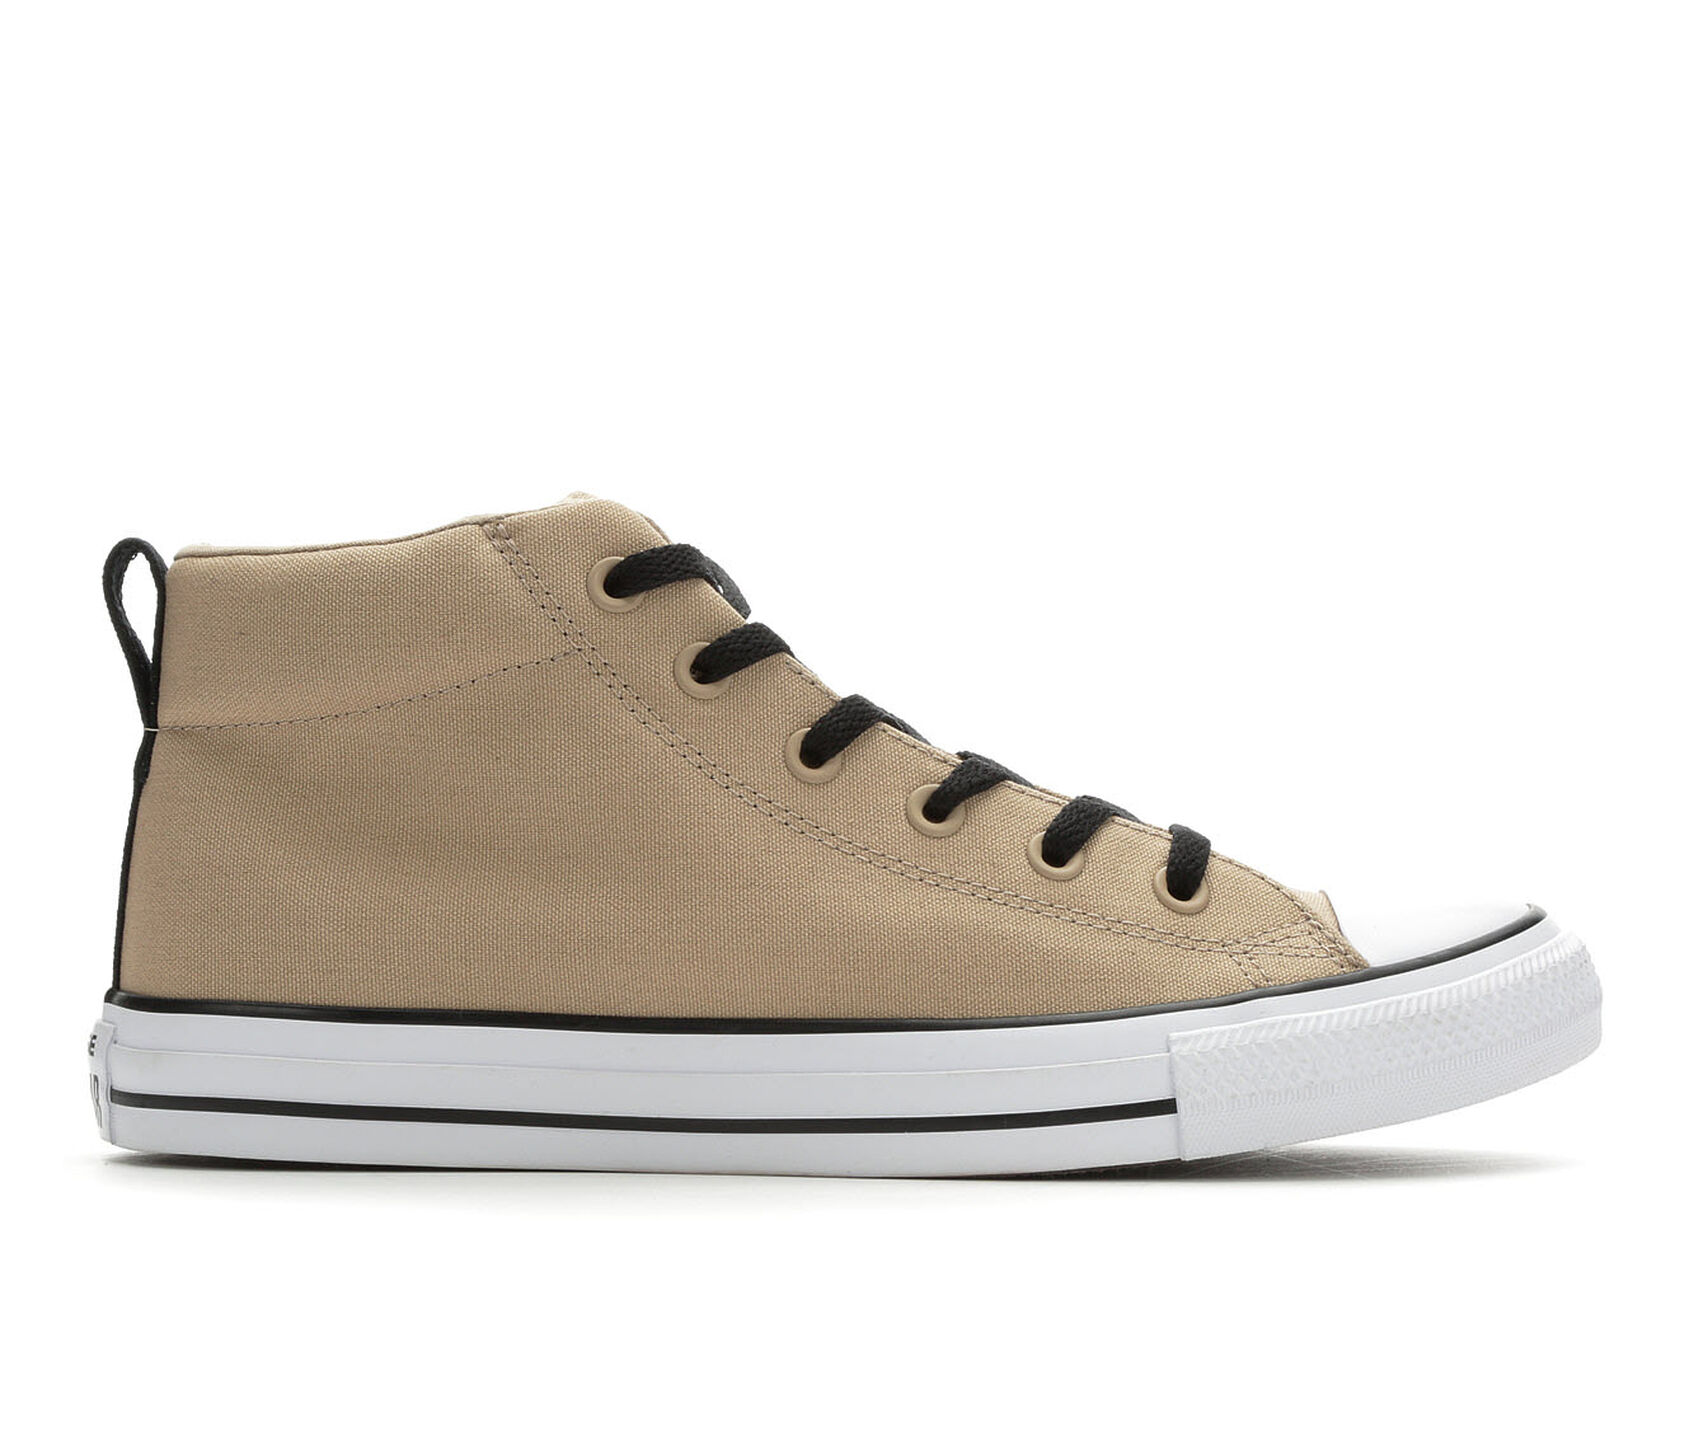 78f2562fa9919b ... Converse Chuck Taylor All Star Street Mid High Top Sneakers. Previous